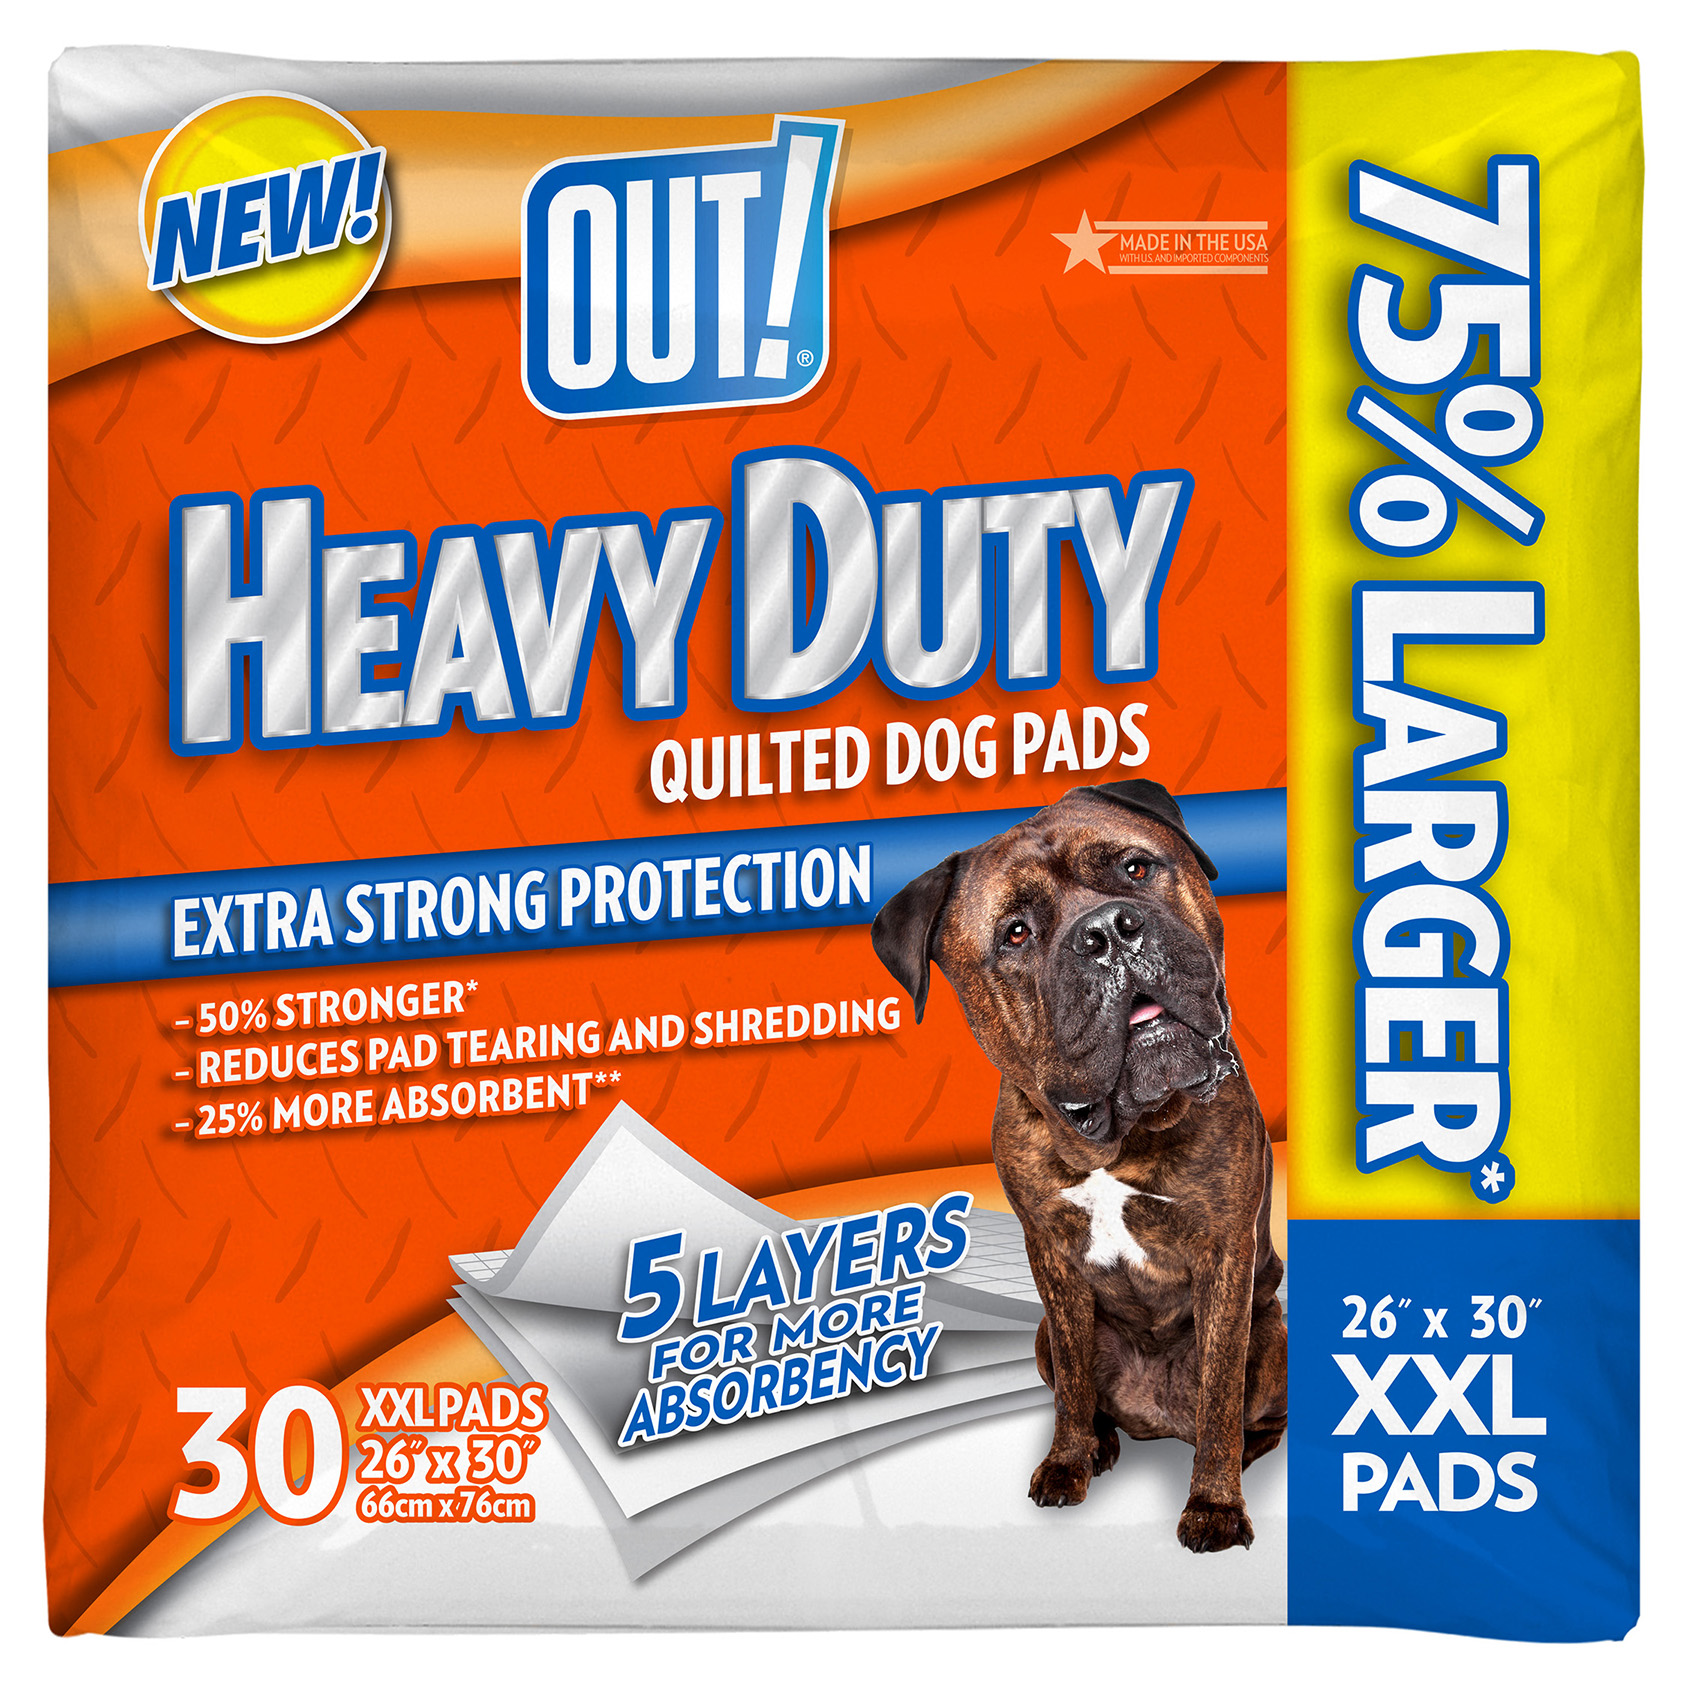 OUT! Heavy Duty XXL Dog Pads, 26 x 30, 30 pads